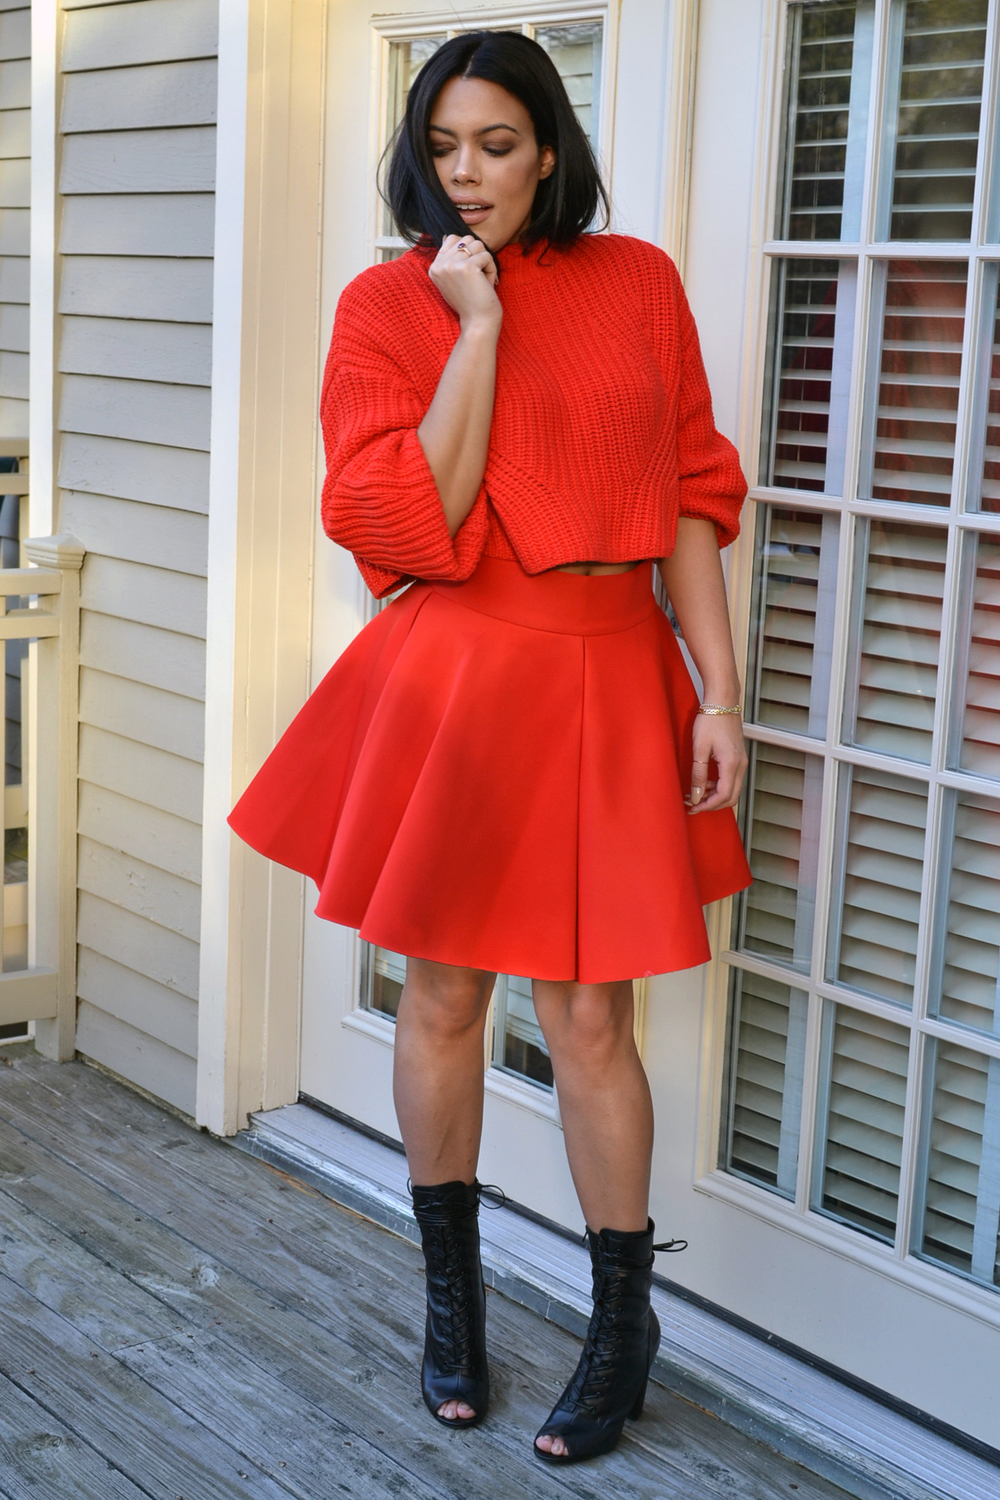 how-to-wear-h&m-red-cropped-oversize-sweater-red-flared-skirt-peaceloveshea-steve-madden-leather-boots-how-to-all-red-outfit.jpg